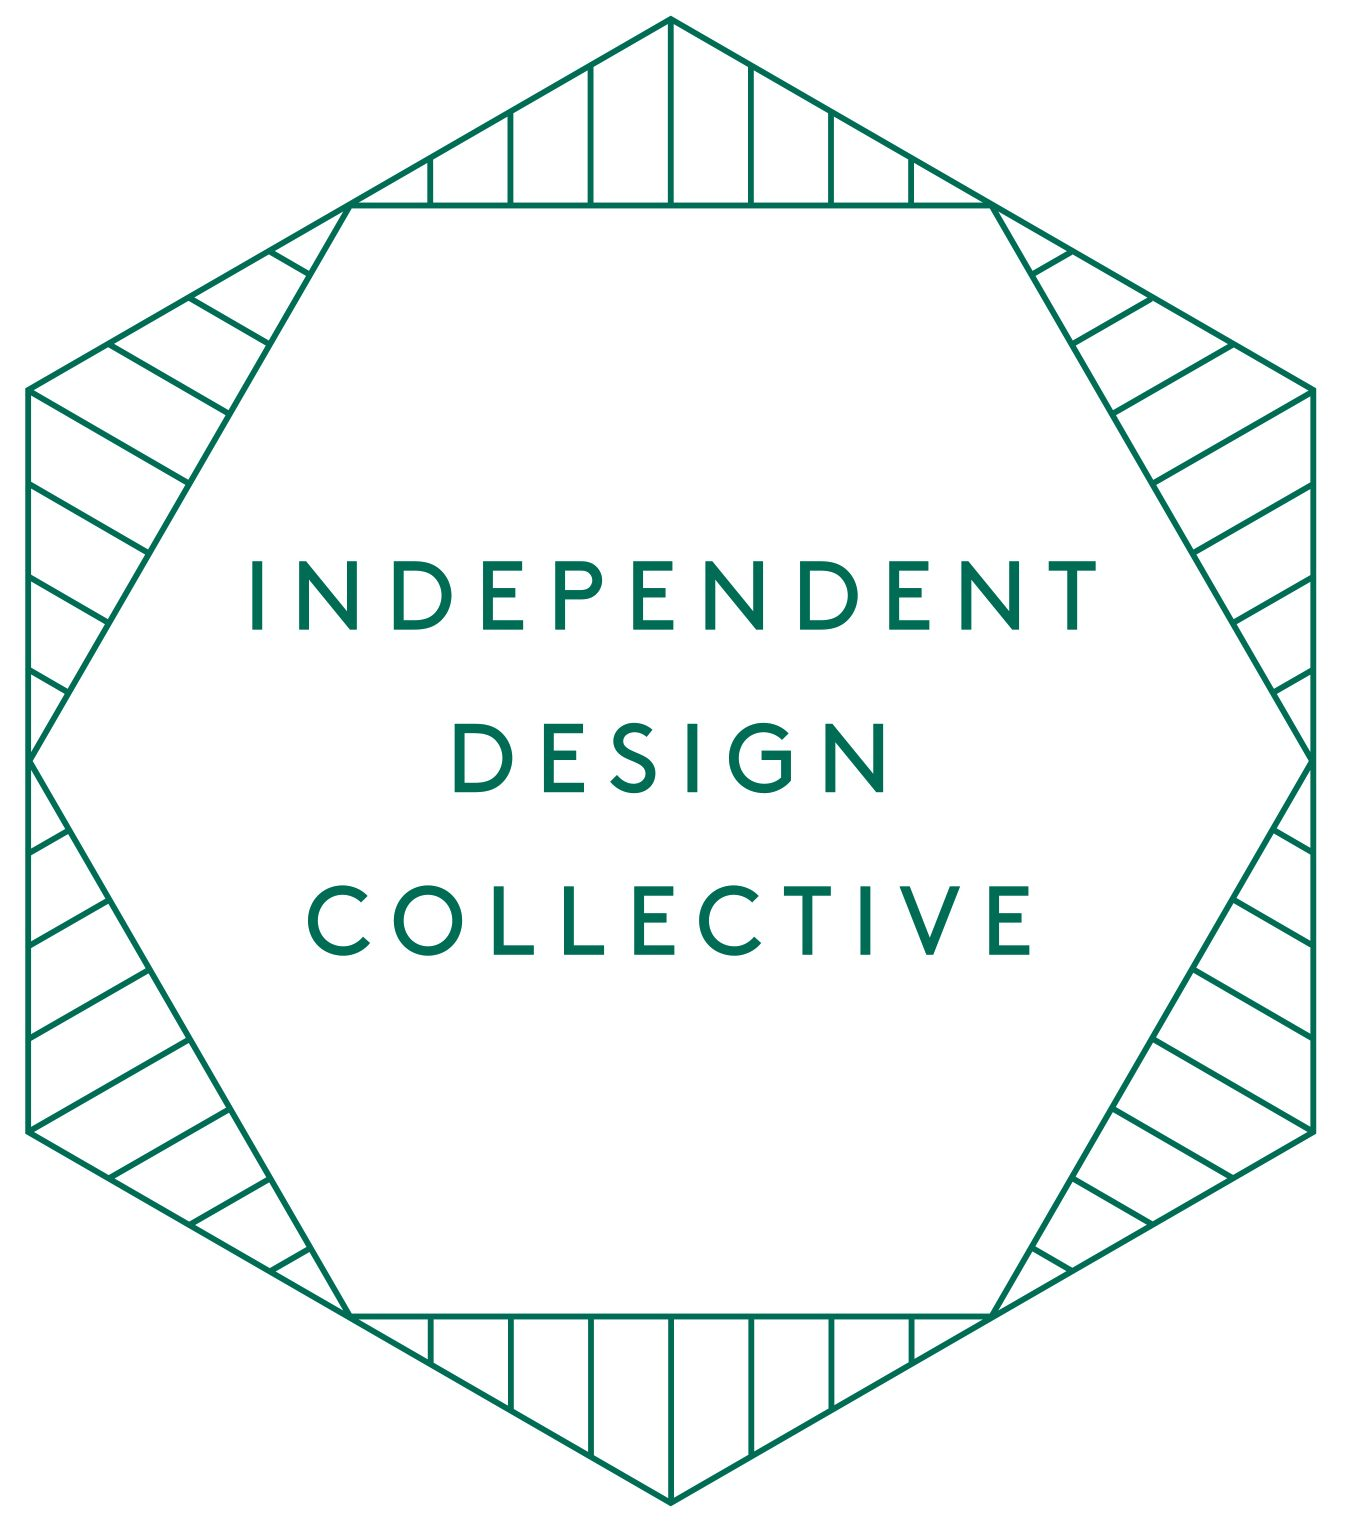 Independent Design Collective